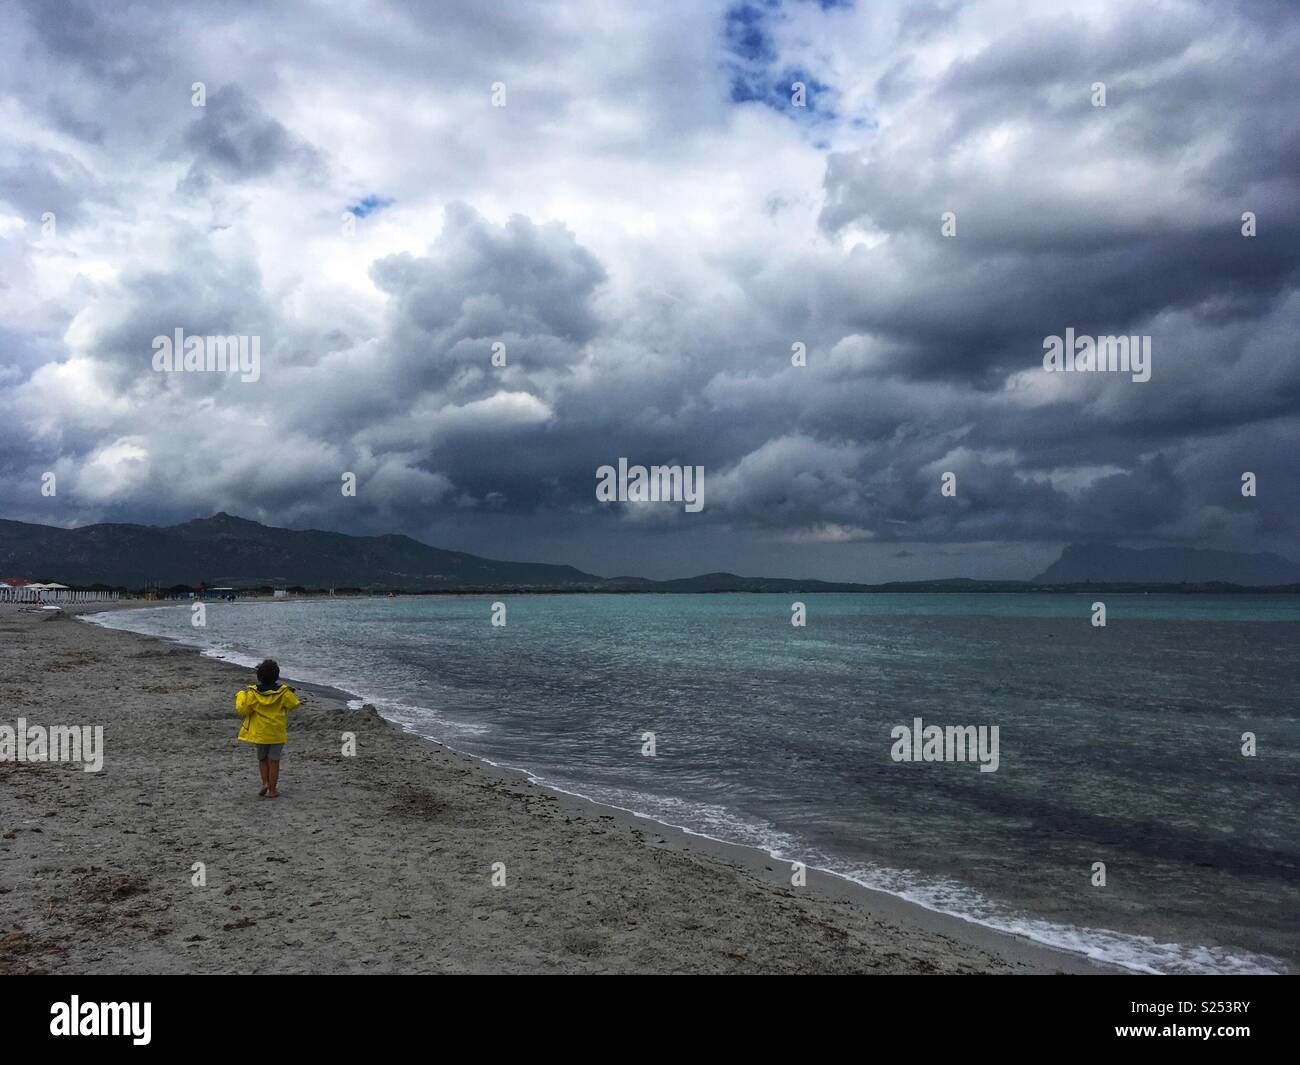 A boy running on the beach during stormy weather - Stock Image